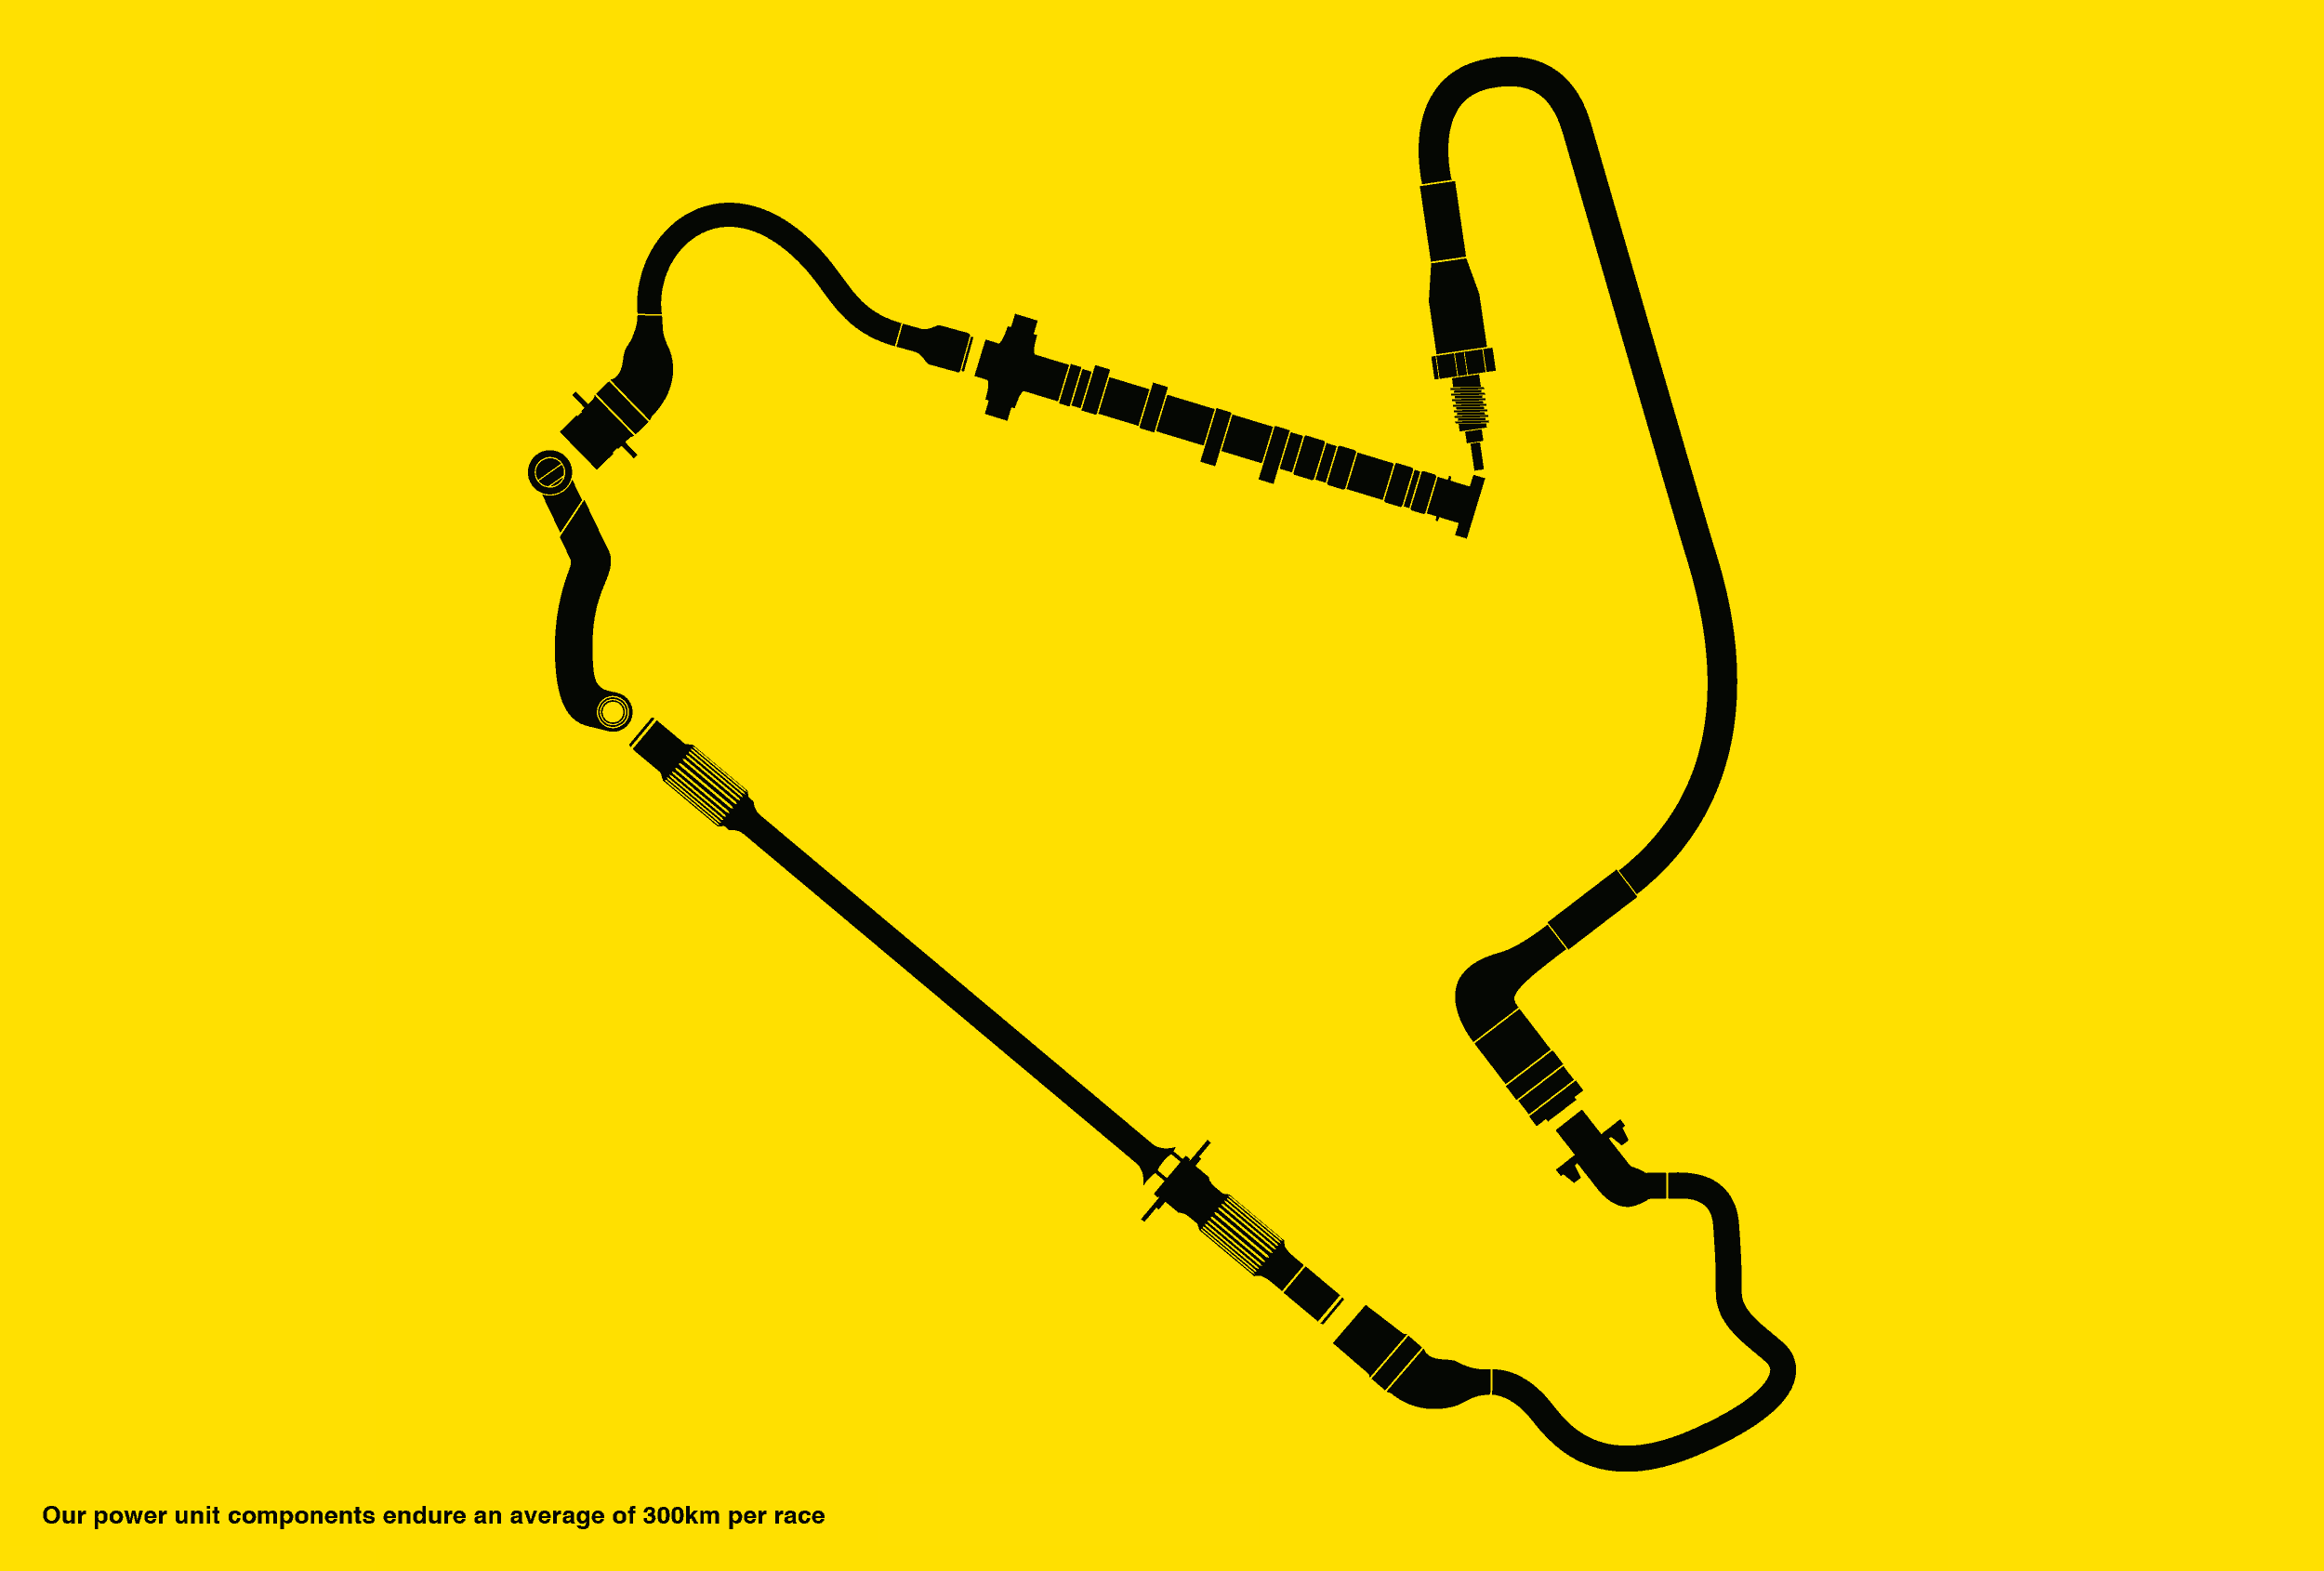 Power unit components forming a race track.